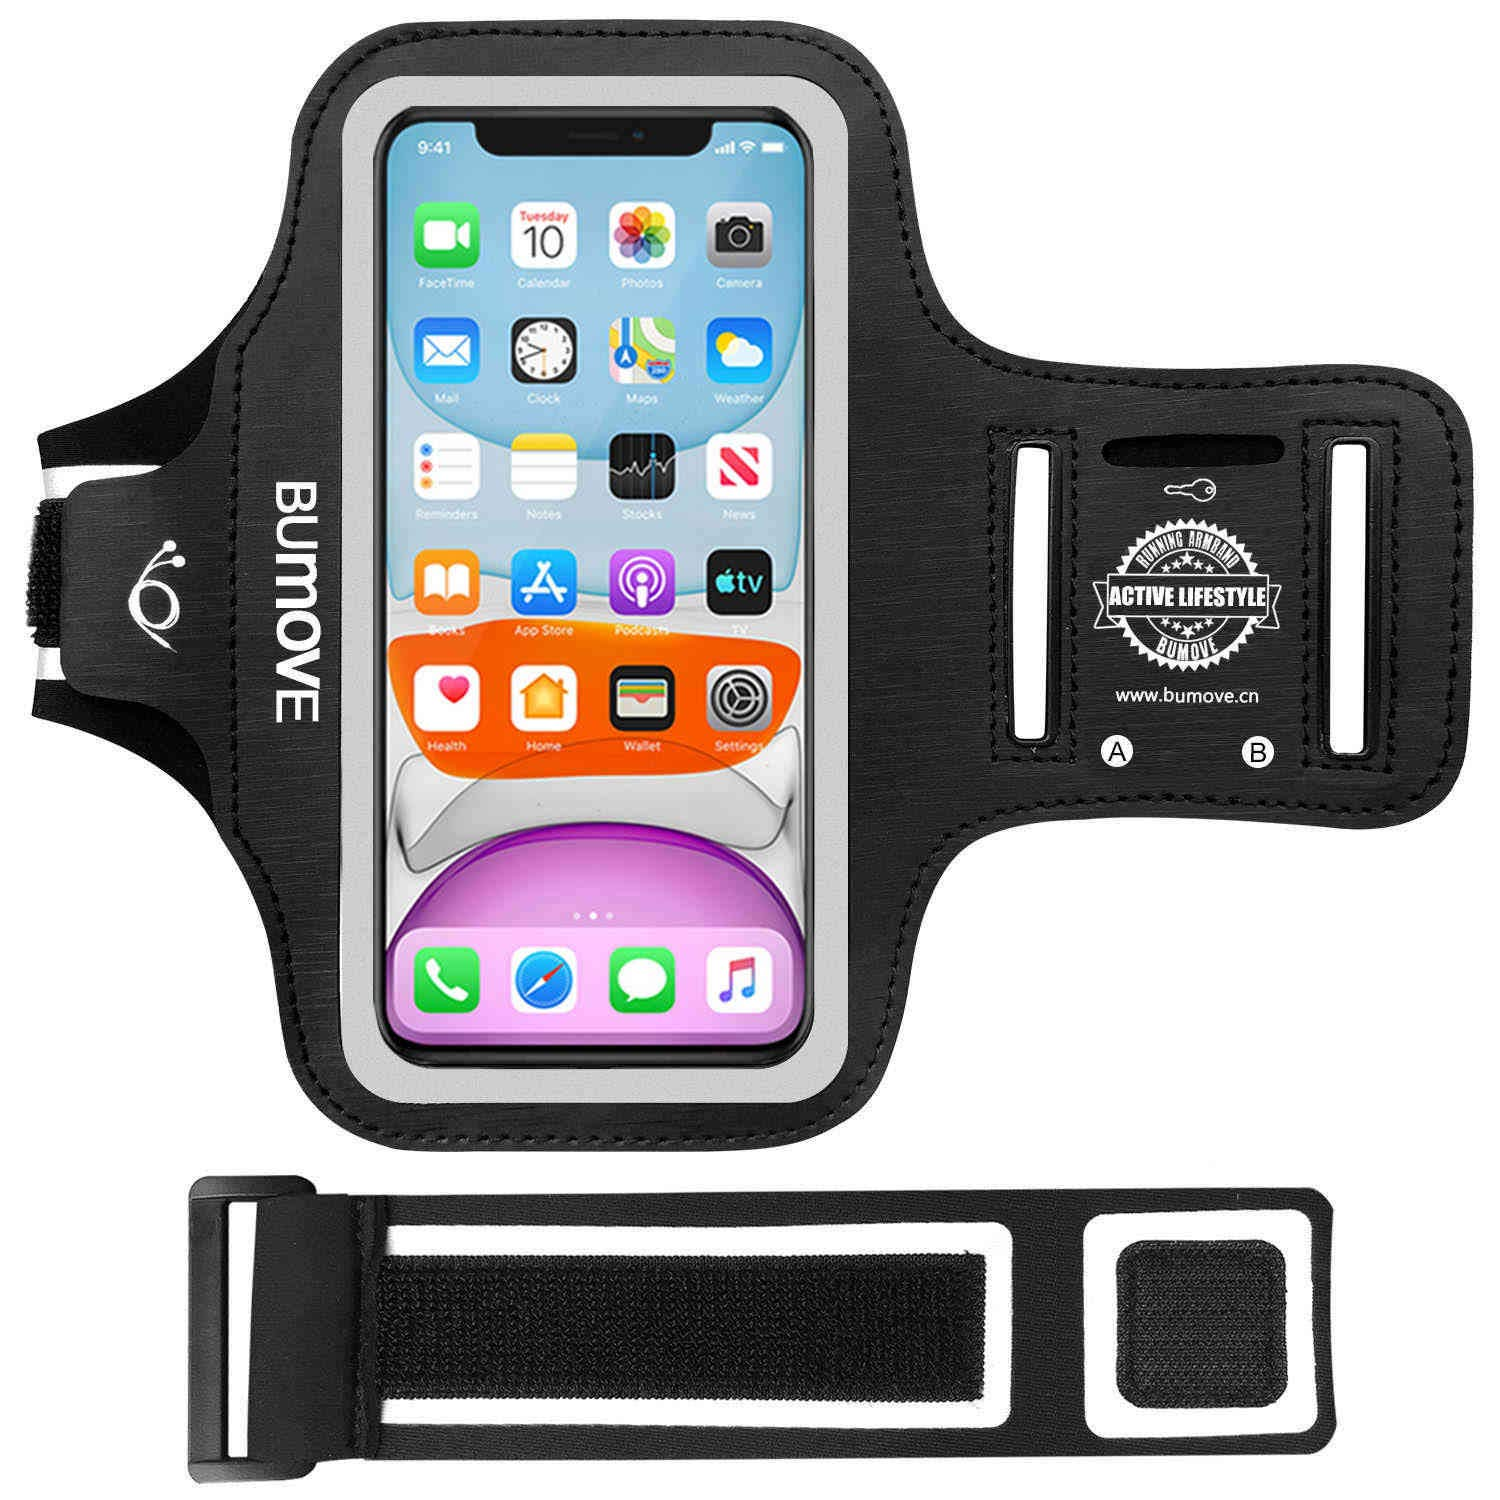 iPhone 11, XR Armband, BUMOVE Gym Running Workouts Sports Cell Phone Arm Band for iPhone 11/XR with Key/Card Holder (Black)